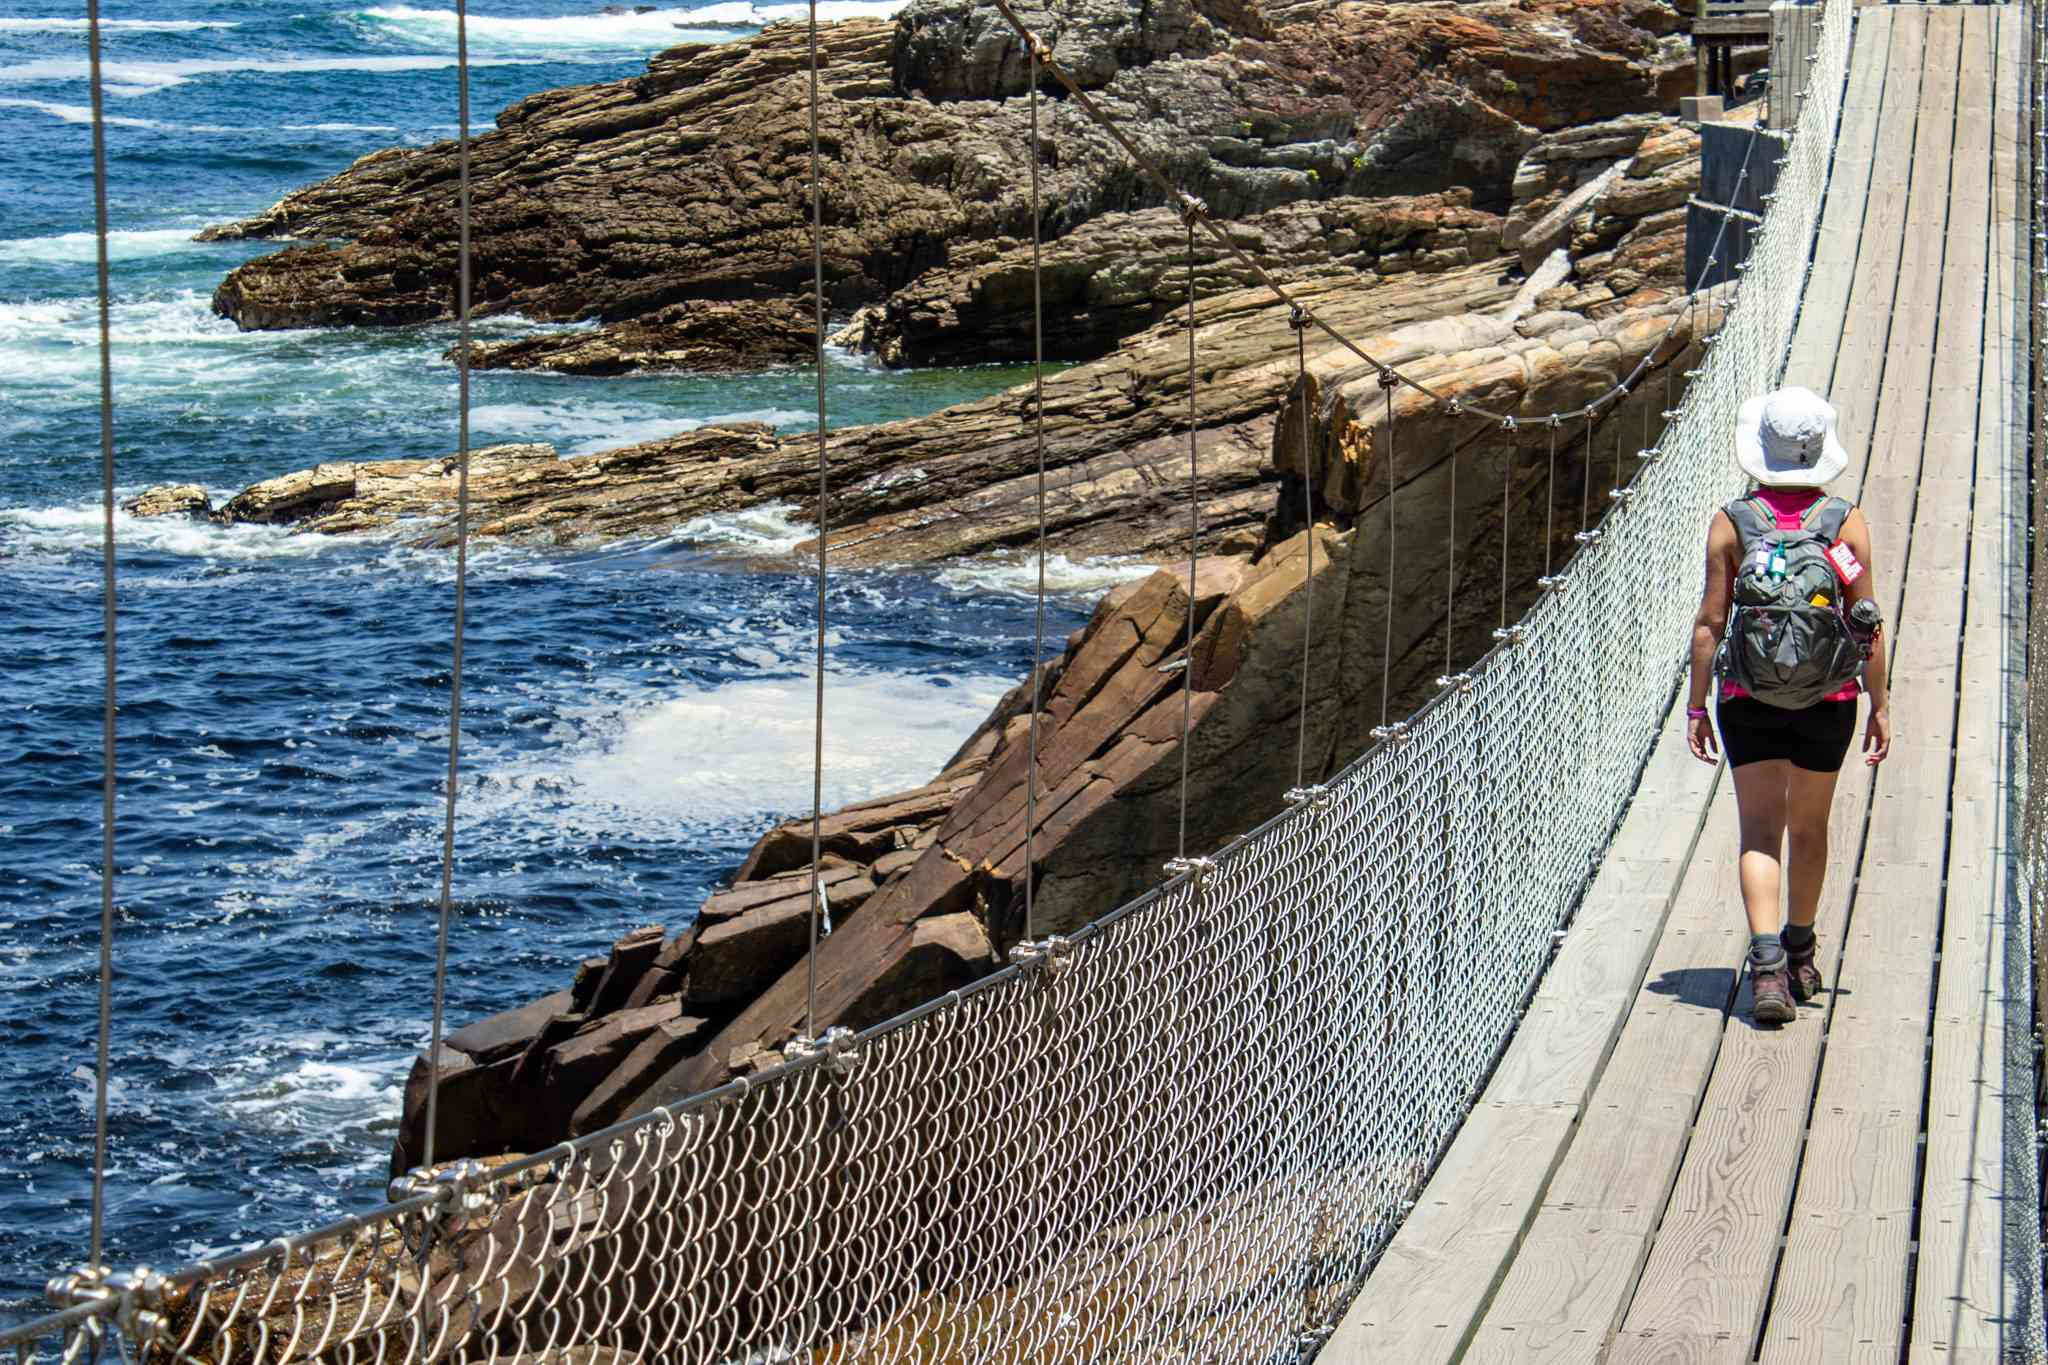 girl walks across suspension bridge with blue water to her left